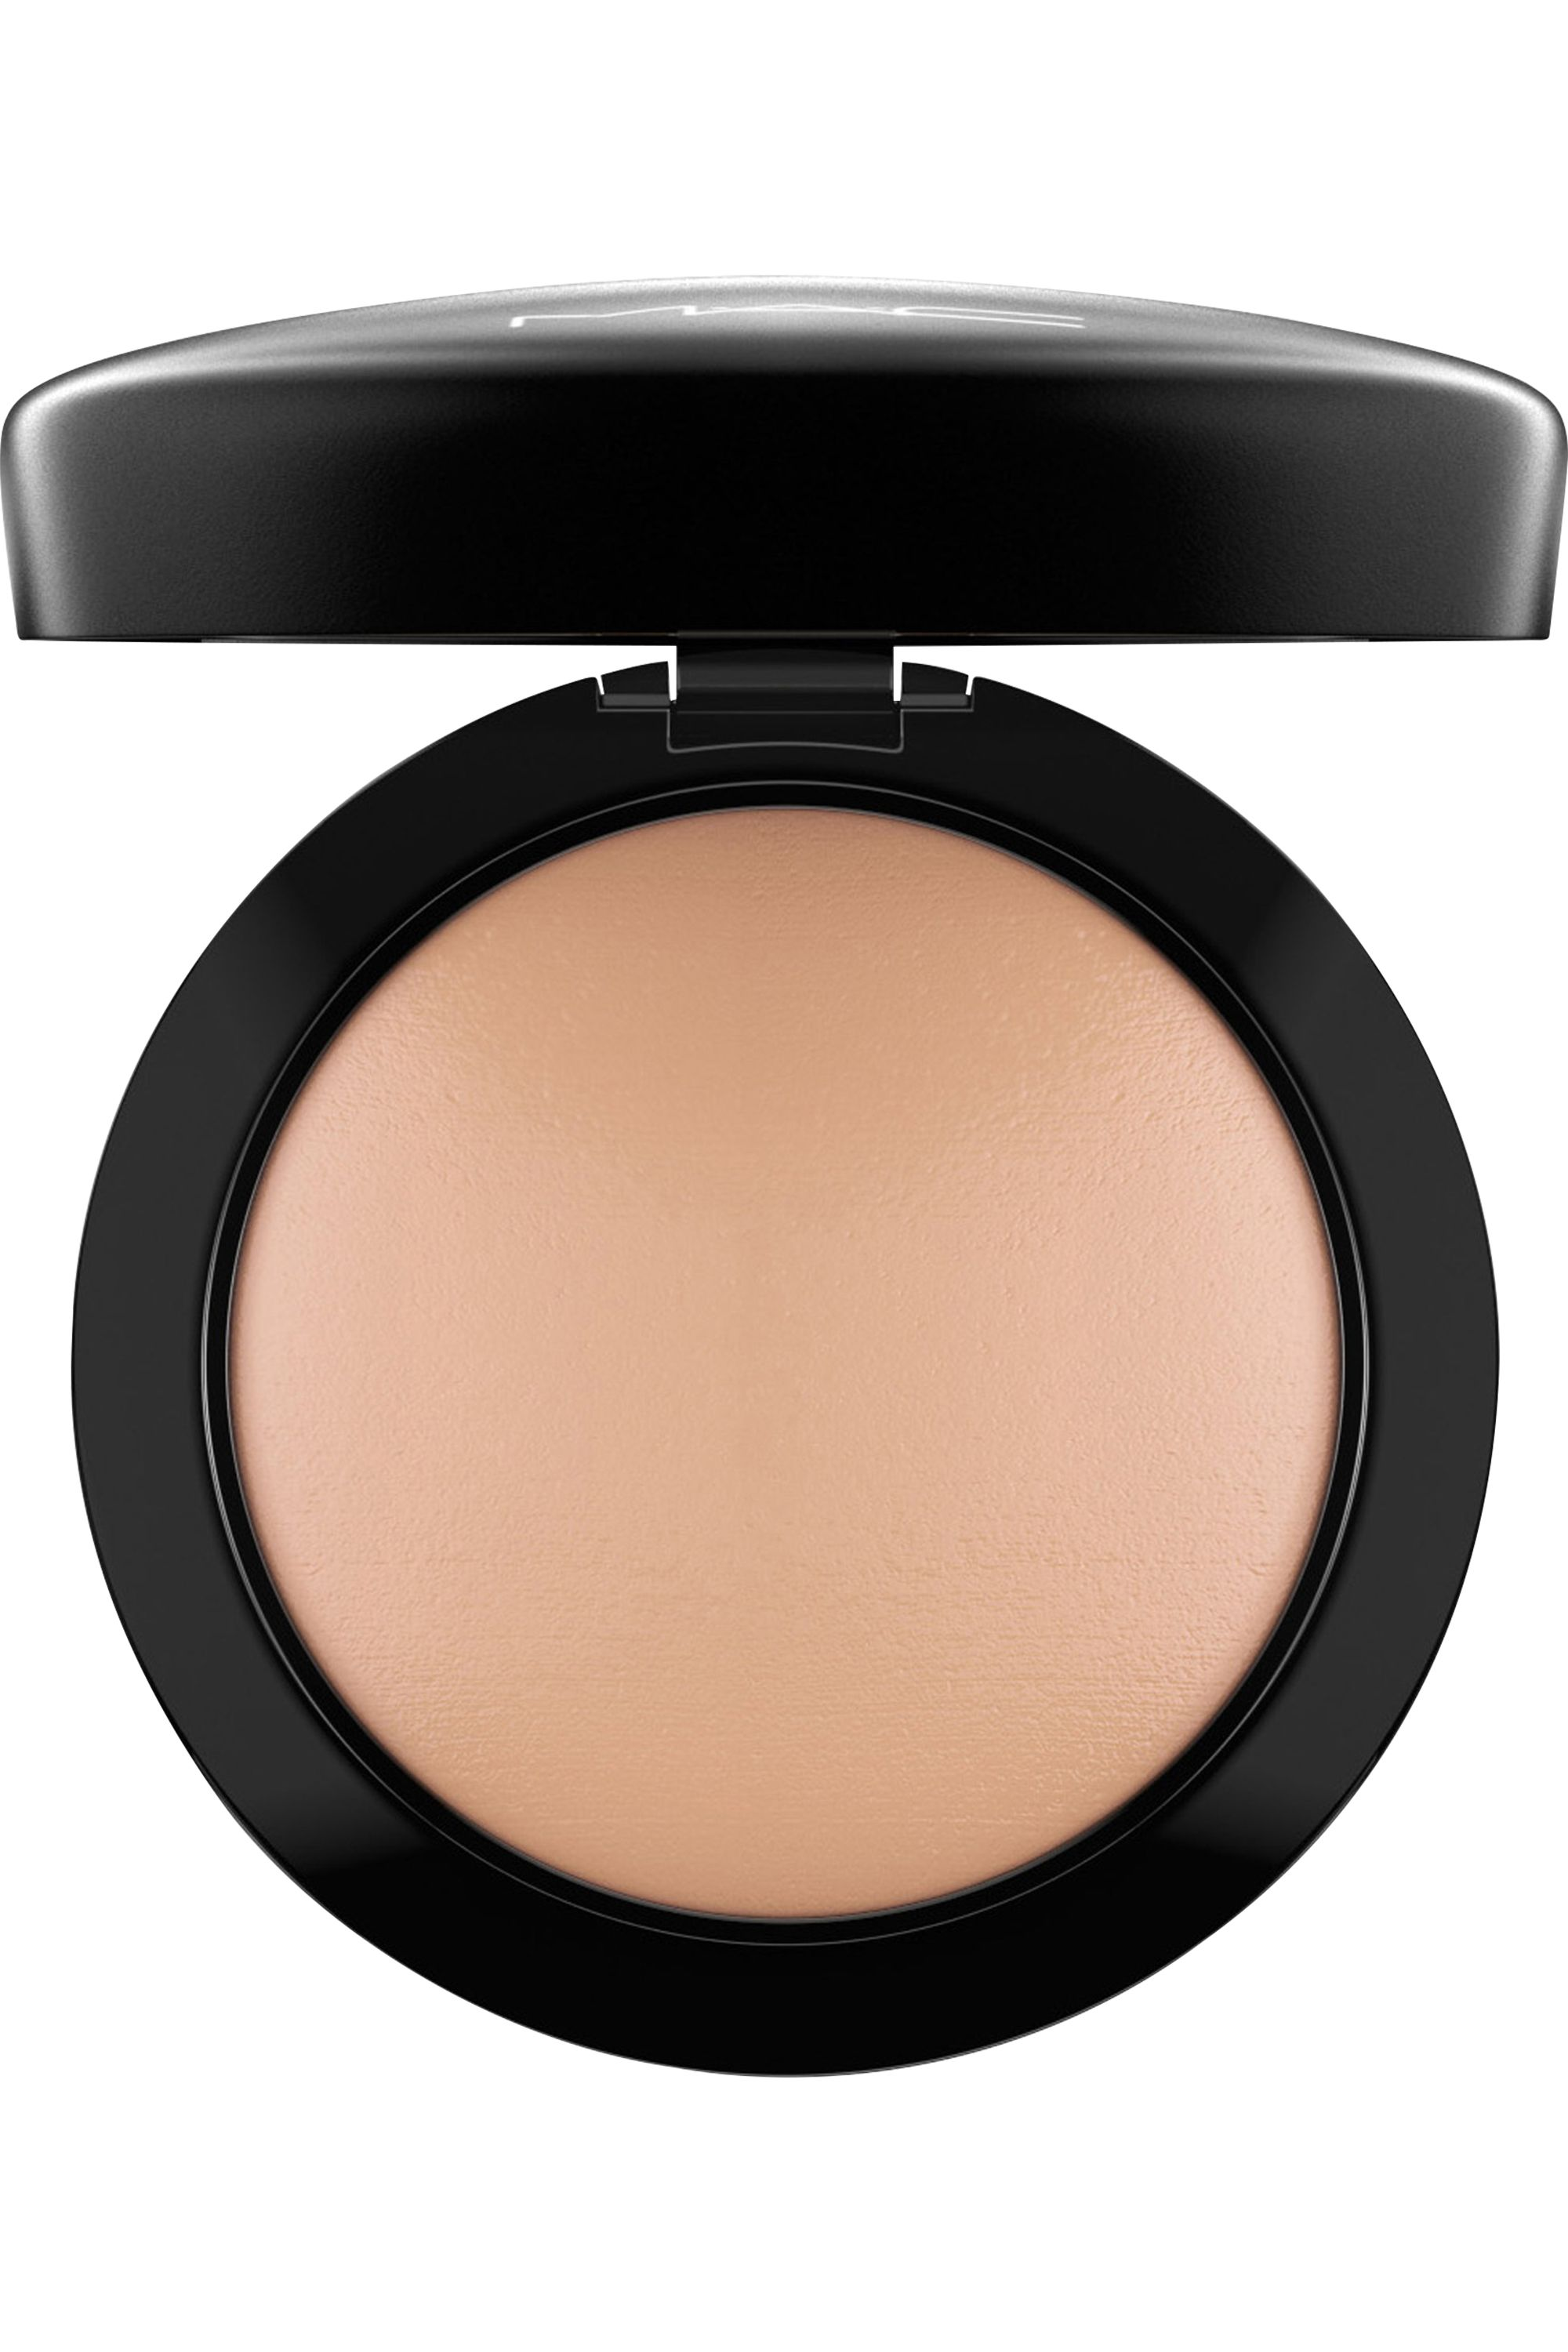 Blissim : M.A.C - Poudre Compacte Mineralize Skinfinish Natural - Medium Dark